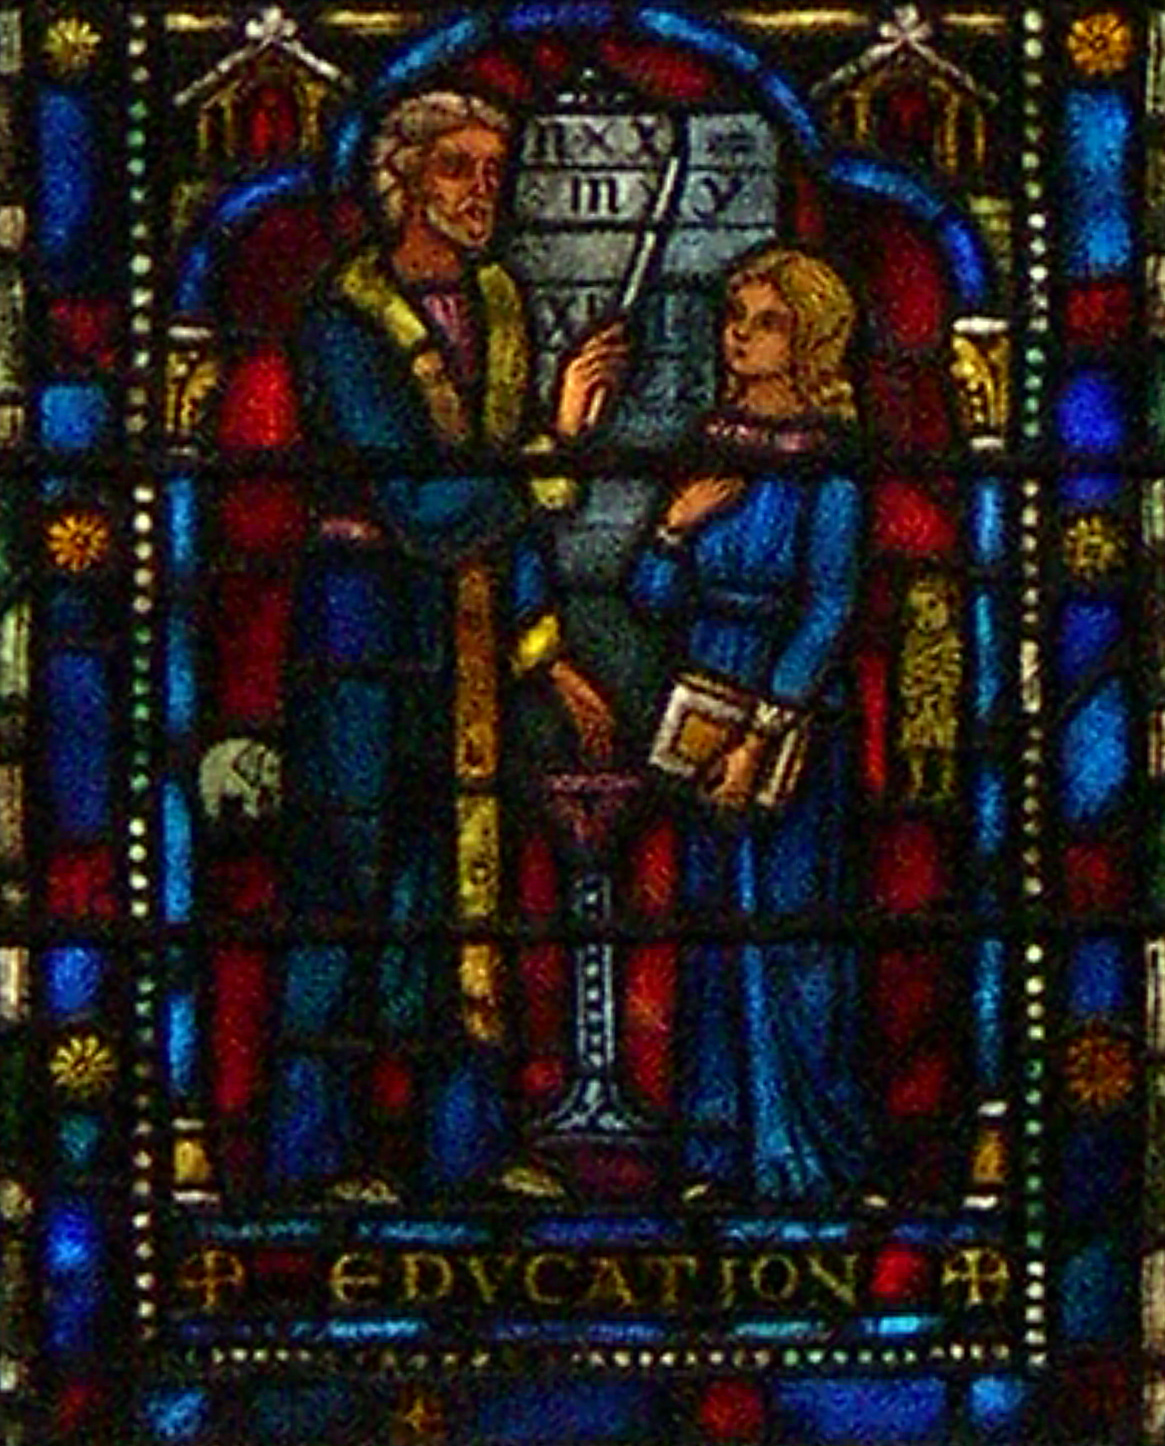 education window pane from crimea cathedral